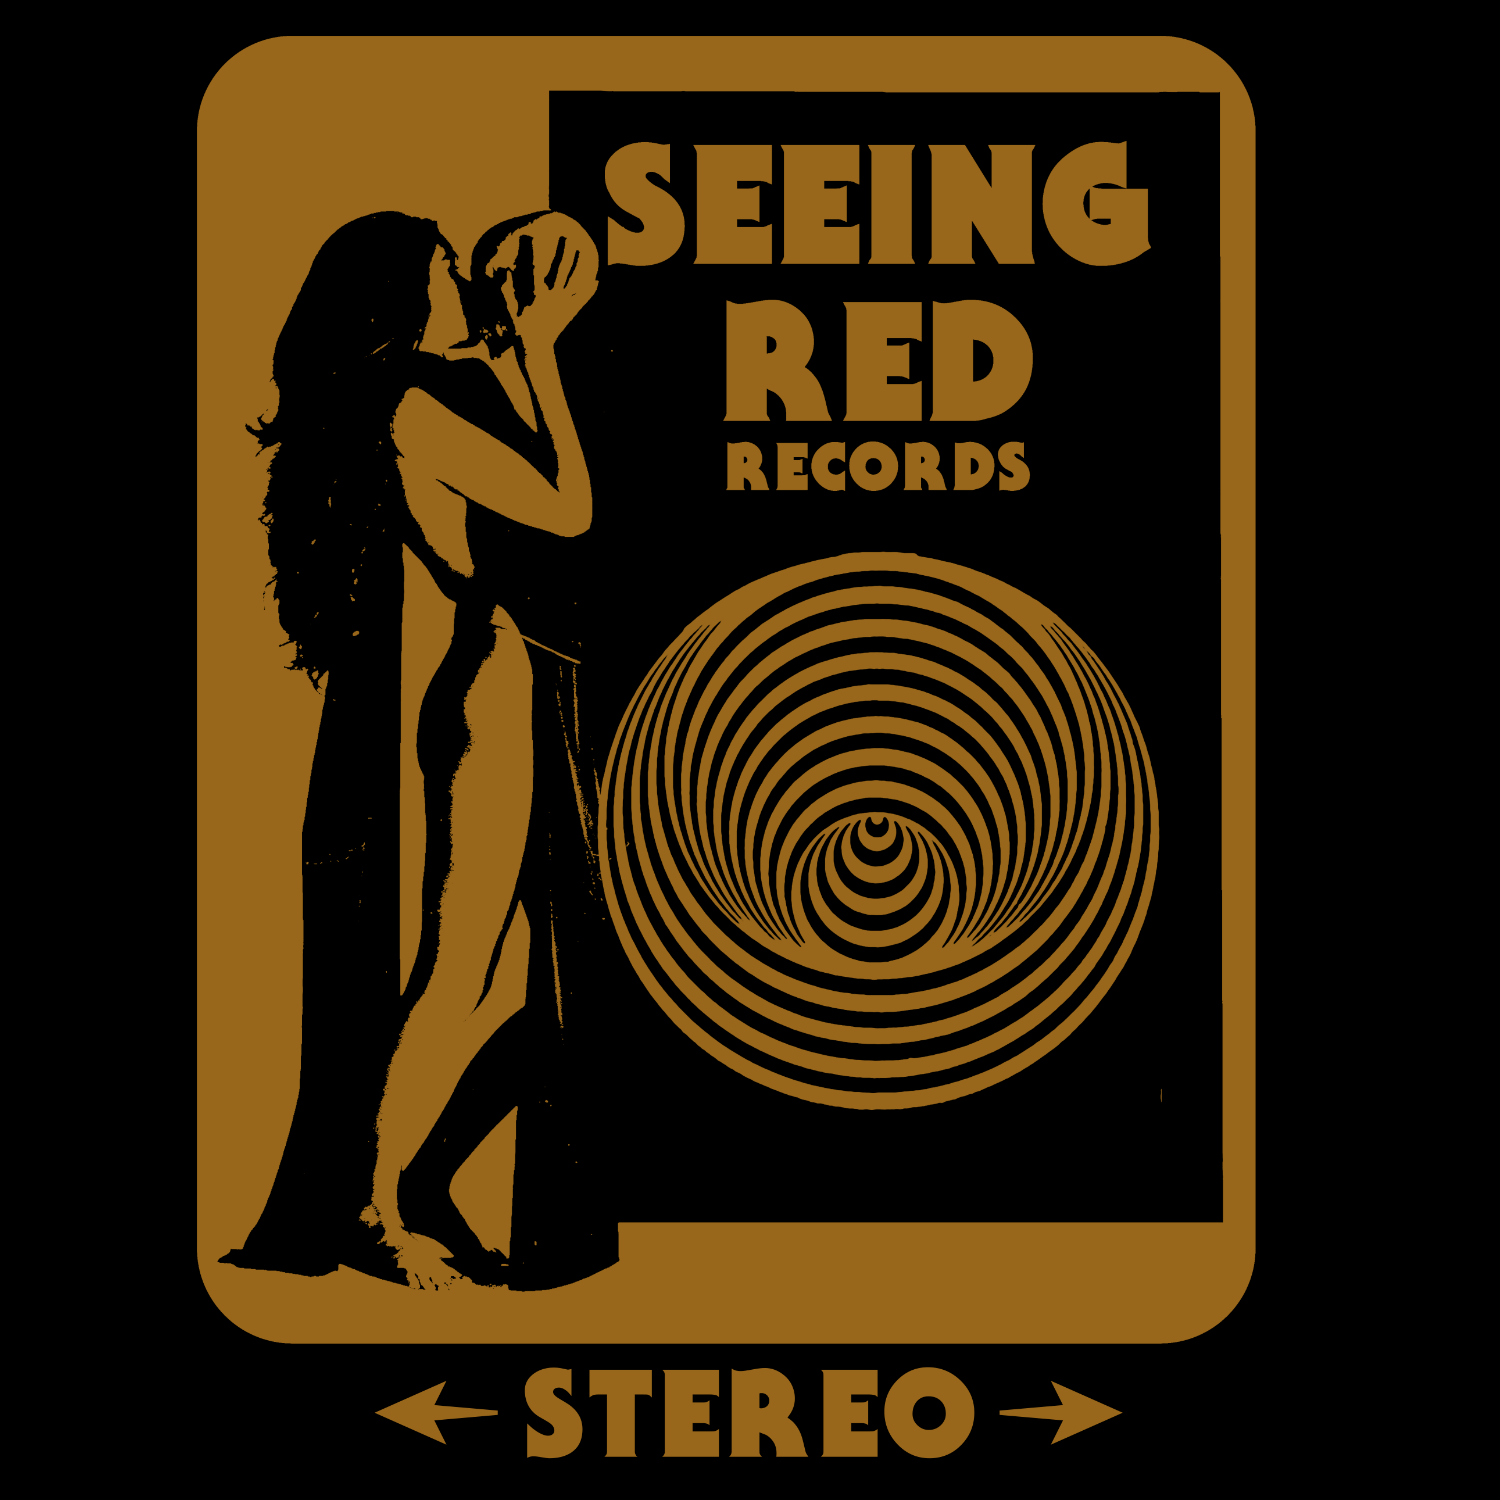 Seeing Red Records Tshirt